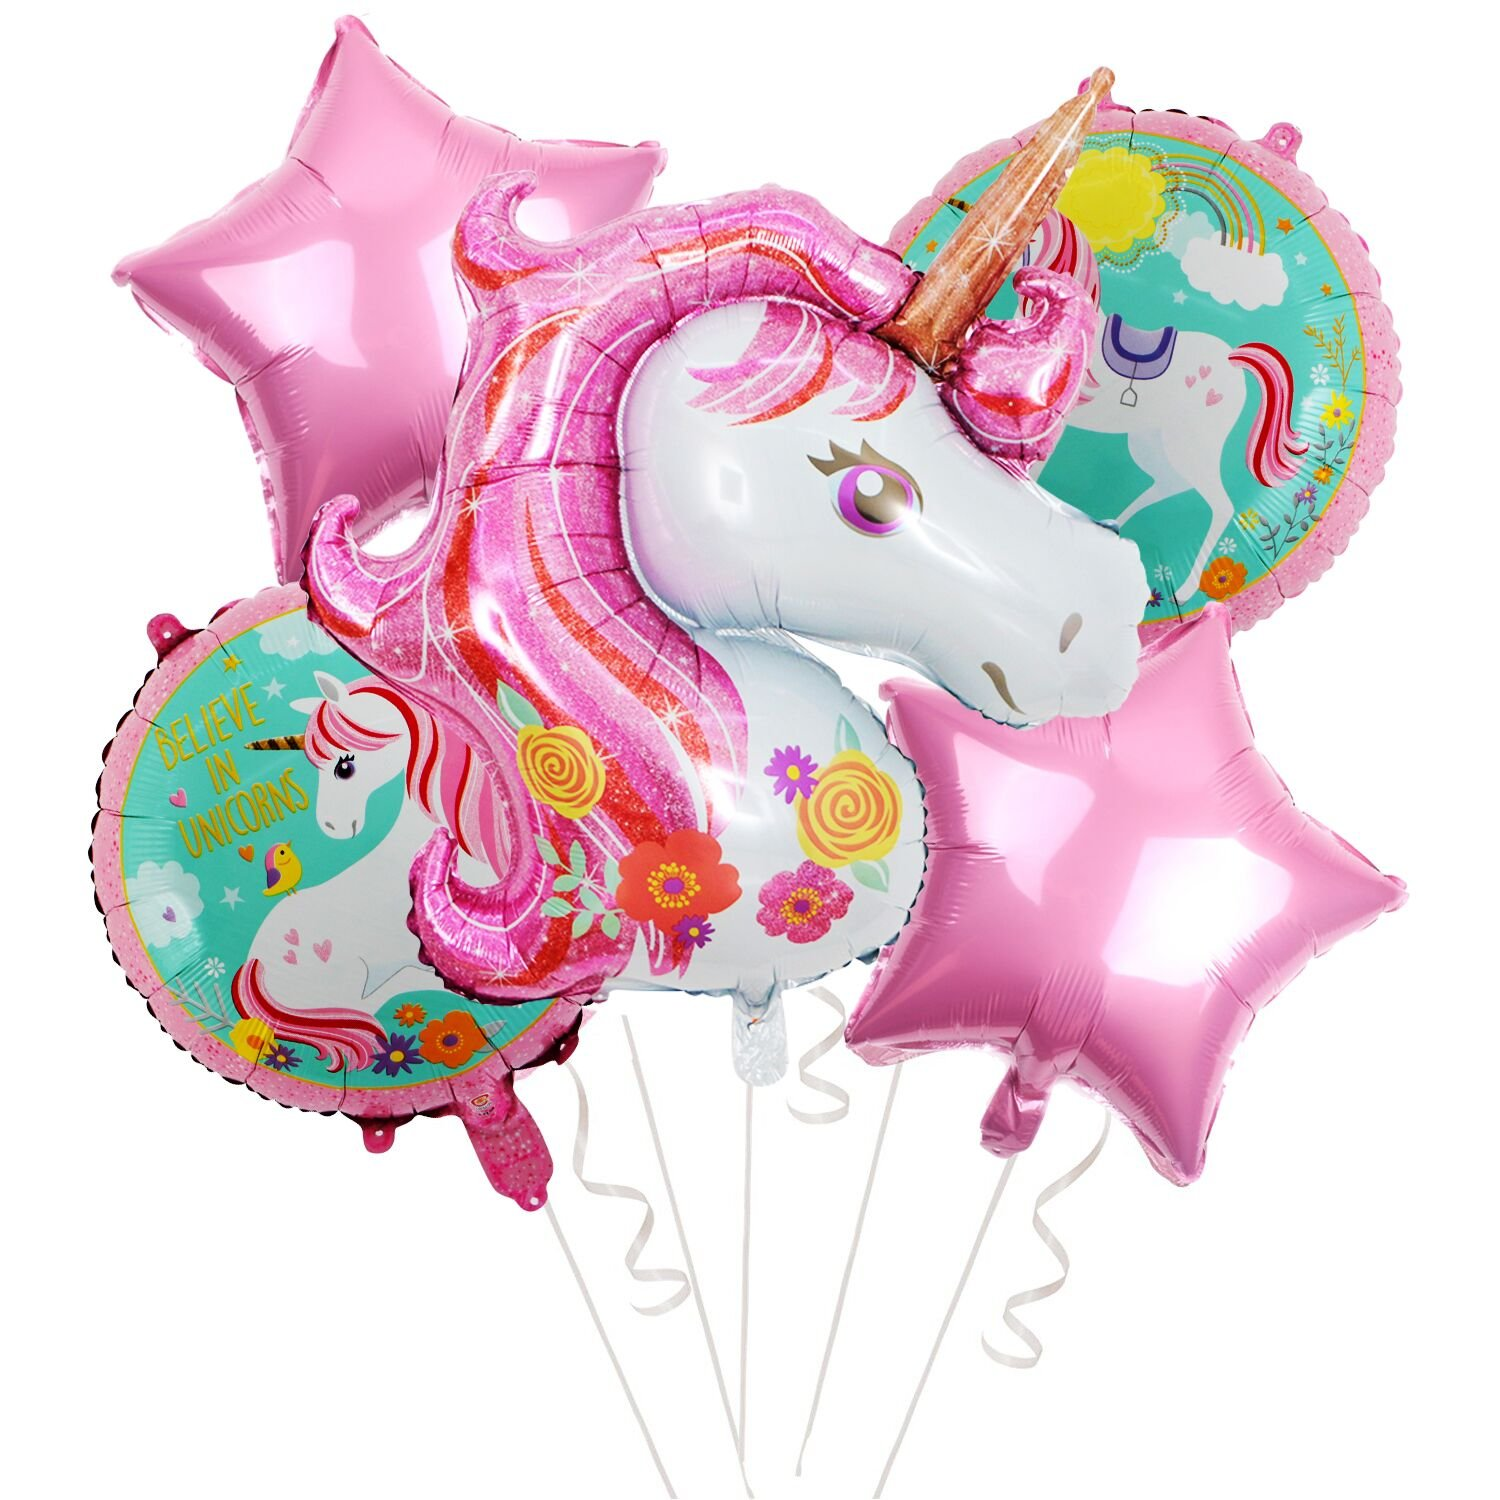 Unicorn Balloons for Birthday Party Decorations Party Supplies Large 41 inch Unicorn Balloon for Party Events MorritoPartySupplies